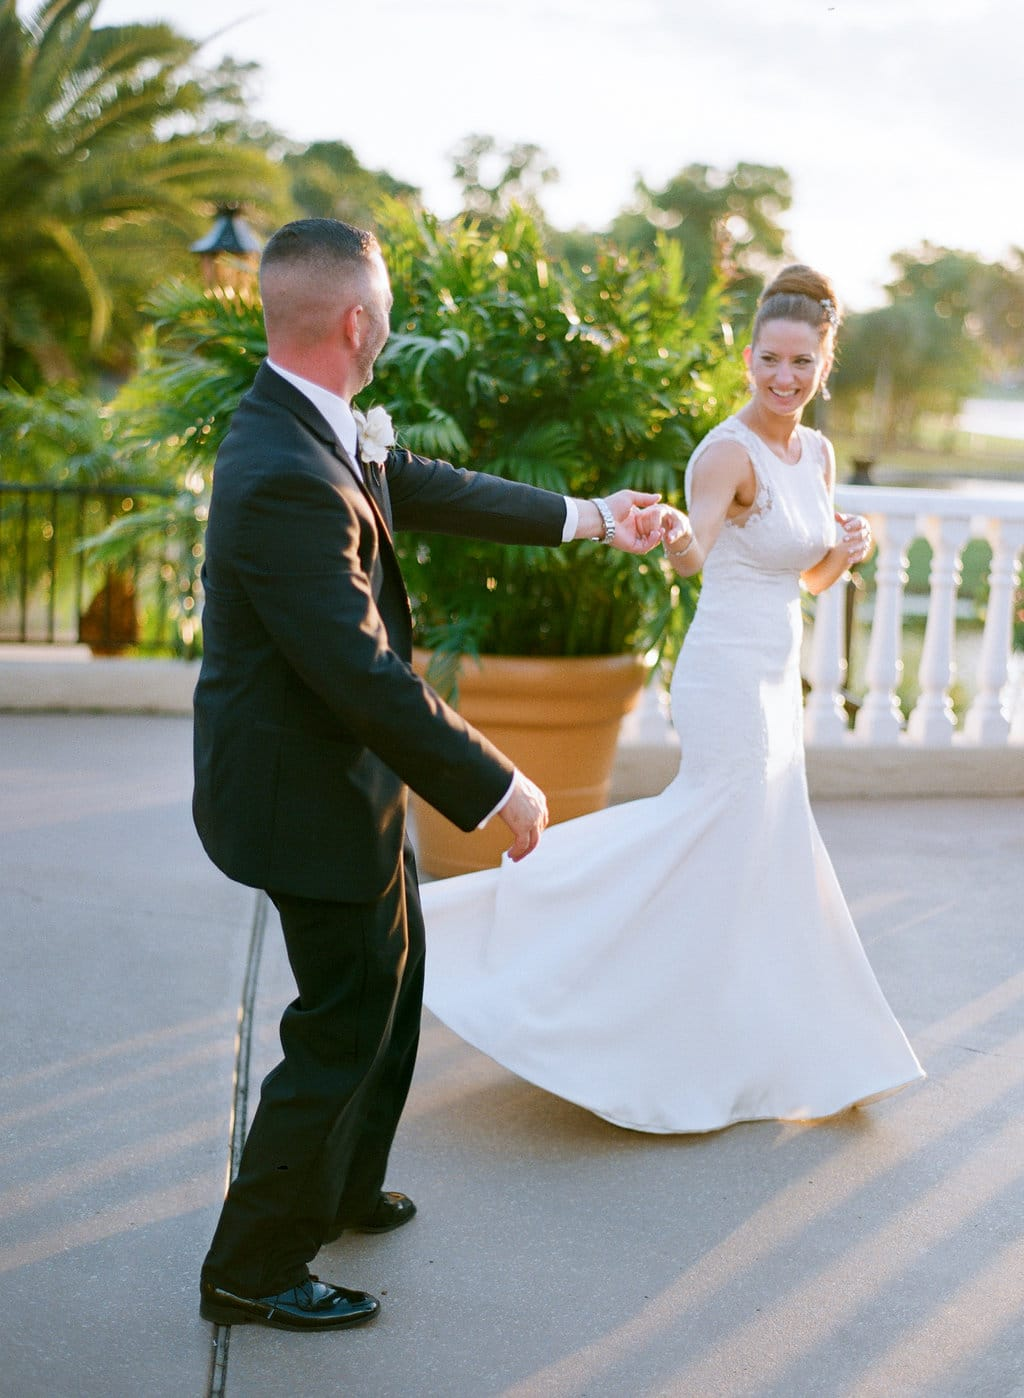 Groom twirling bride on outdoor patio at Mission Inn Resort